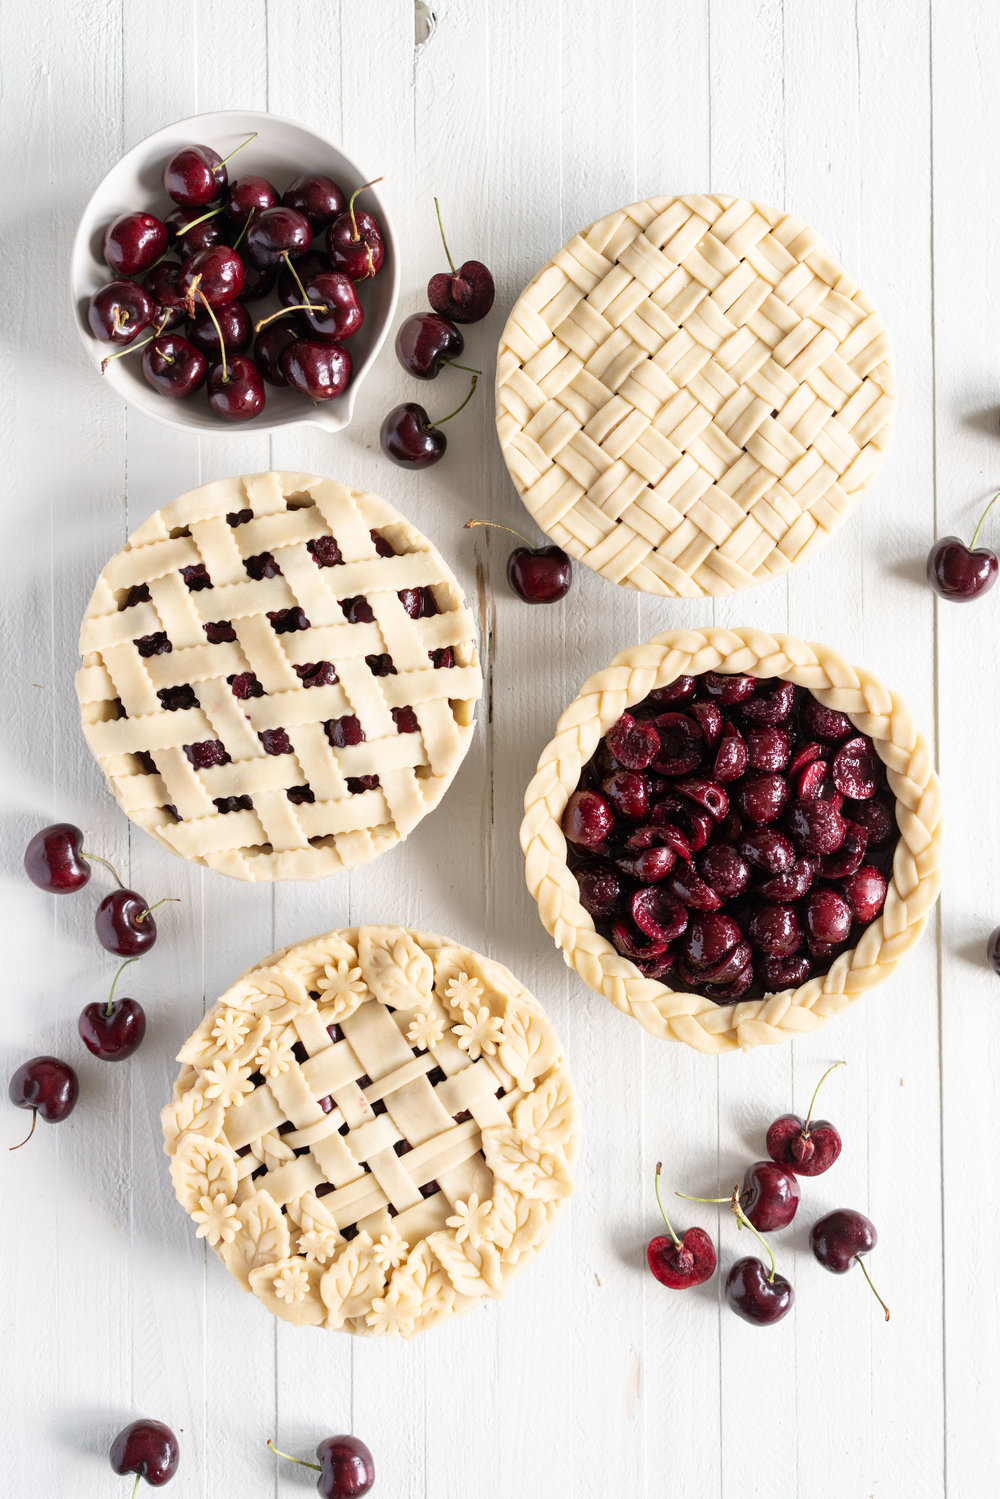 When you have beautiful, in season cherries, it really is a shame to do anything with it other than make Cherry Pie! These cherry pies are perfectly juicy, with the right balance of sweetness, and have a tender, flaky crust. They are easy to make, can be prepared ahead, and make the perfect summer dessert. #pie #cherrypie #recipe #darkcherrypie #fruitpie